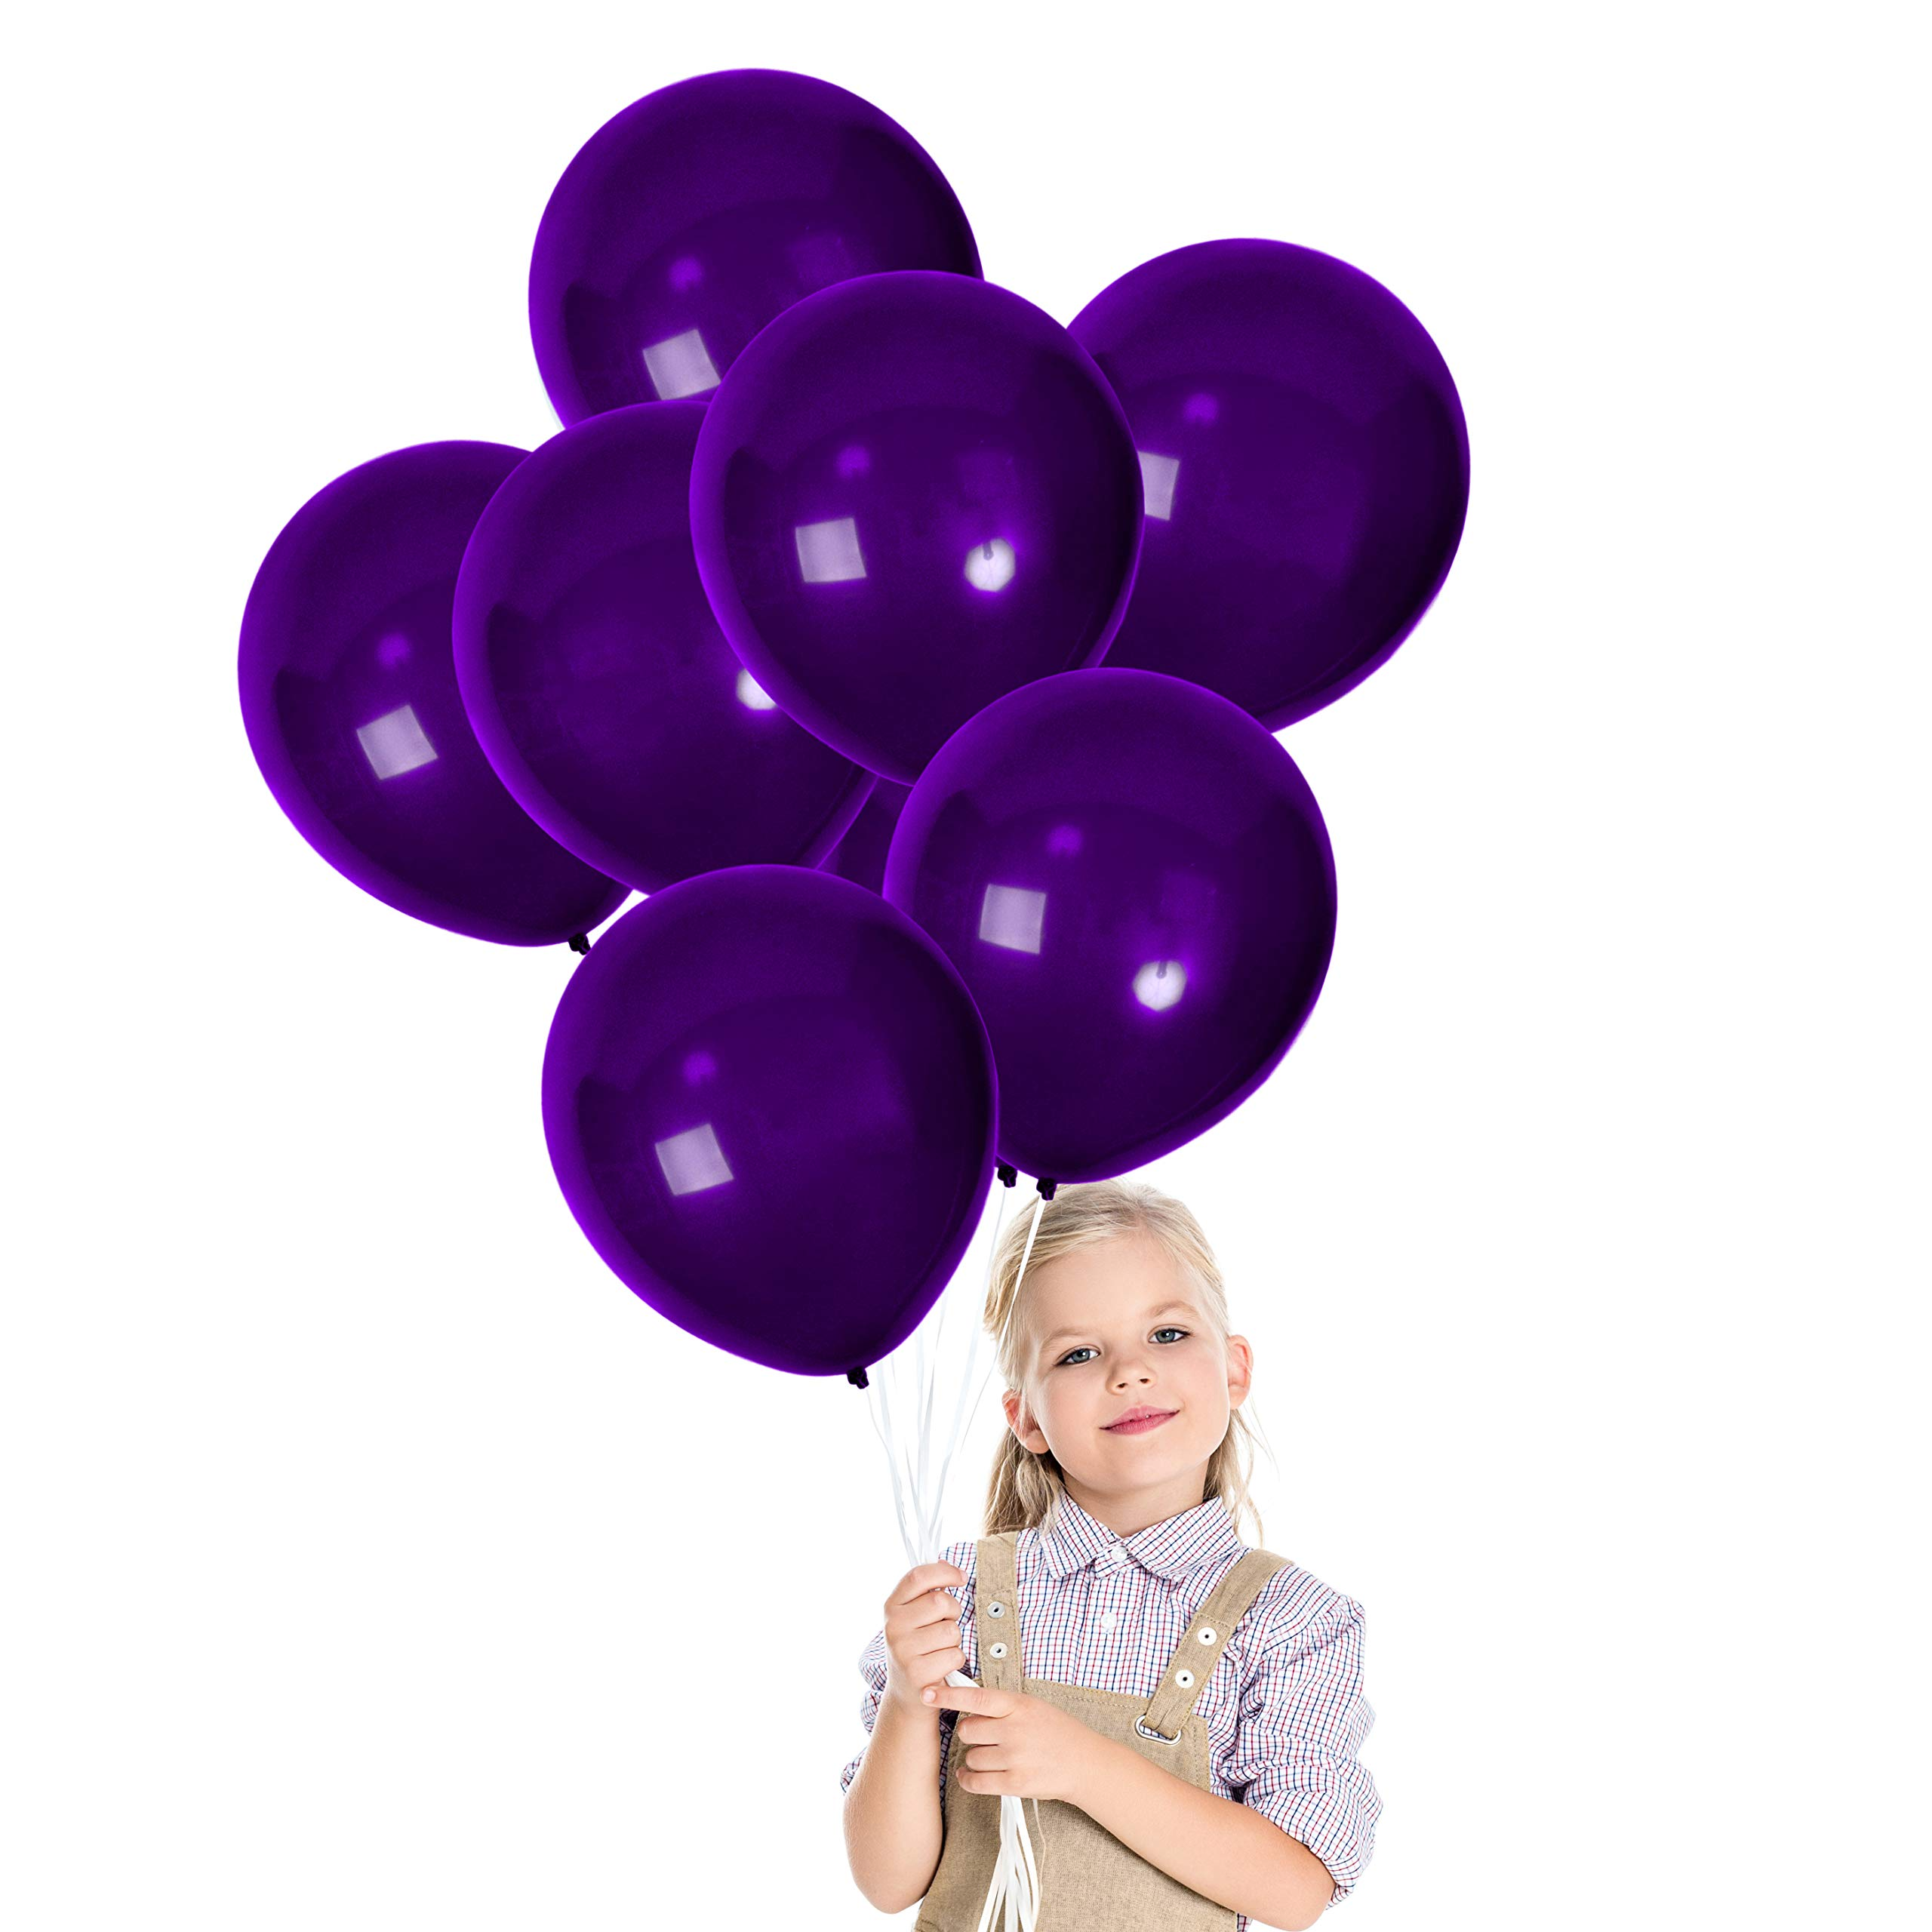 Treasures Gifted Dark Purple Mermaid Baby Shower 12 Inch Balloons Decorations Latex 100 Pack and Ribbon for Birthday Wedding Plum Bridal Under The Sea Graduation Party